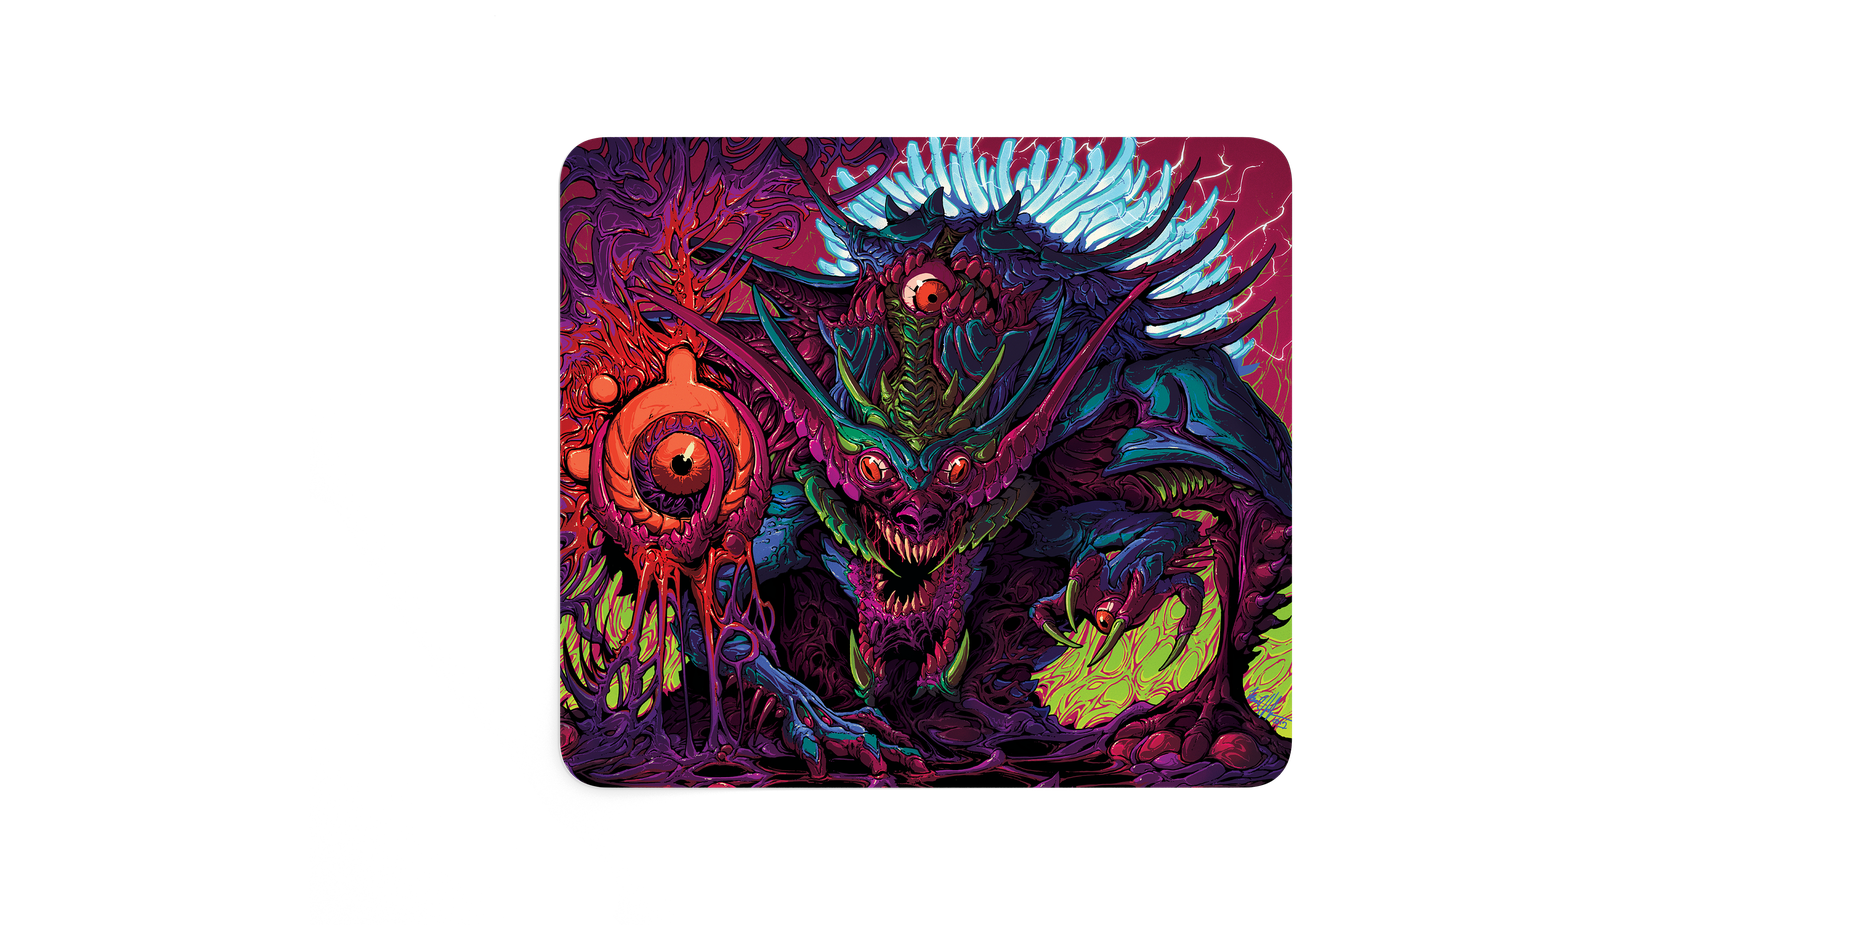 The QcK Large artist mousepad viewed from a the top showing the full artwork